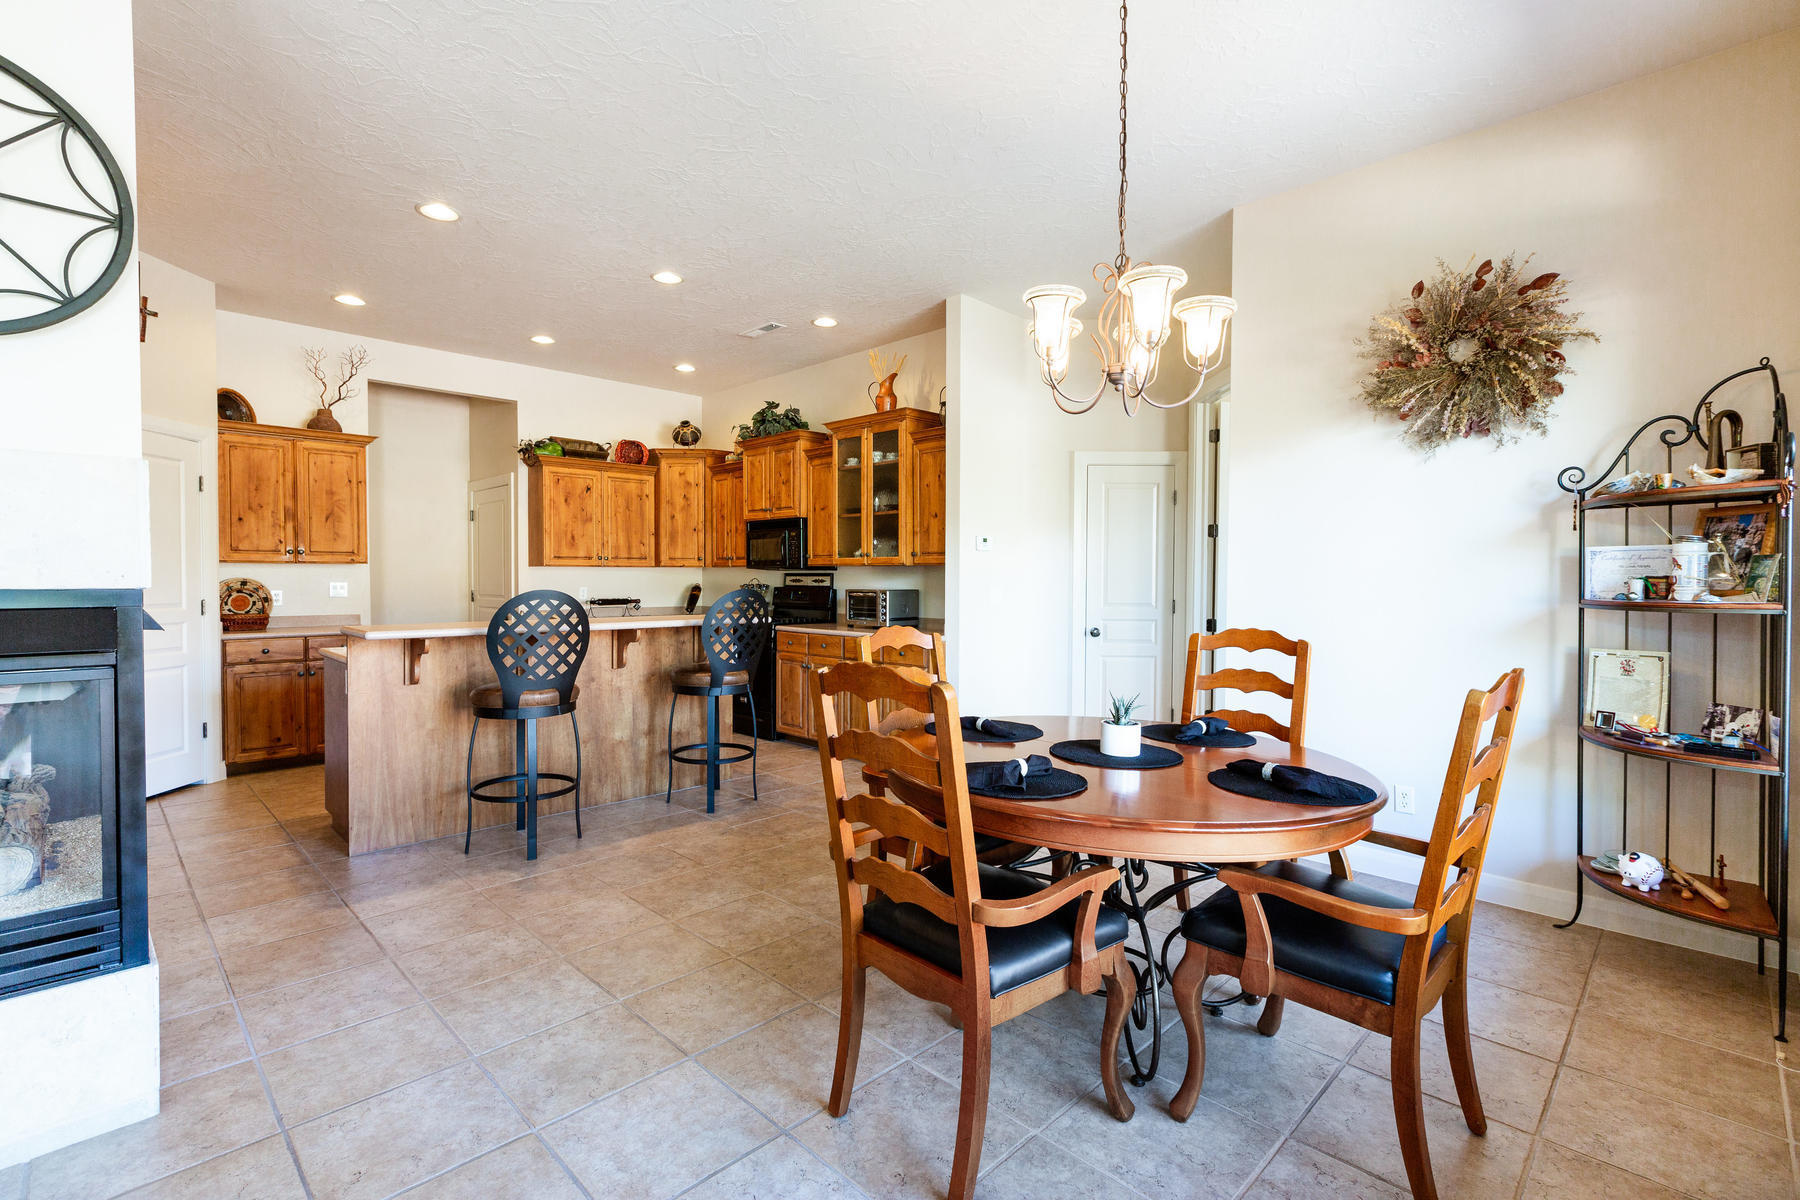 Located at the base of Snow Canyon State Park and walking distance to Tuacahn Amphitheater, this beautiful home has been meticulously maintained and is in like-new condition.  Open floor plan with large great room and kitchen, 3 bedrooms, 2 baths, covered patio, and beautiful red rock views. Turn-key furniture package is negotiable. Call to view this home, it will go fast!